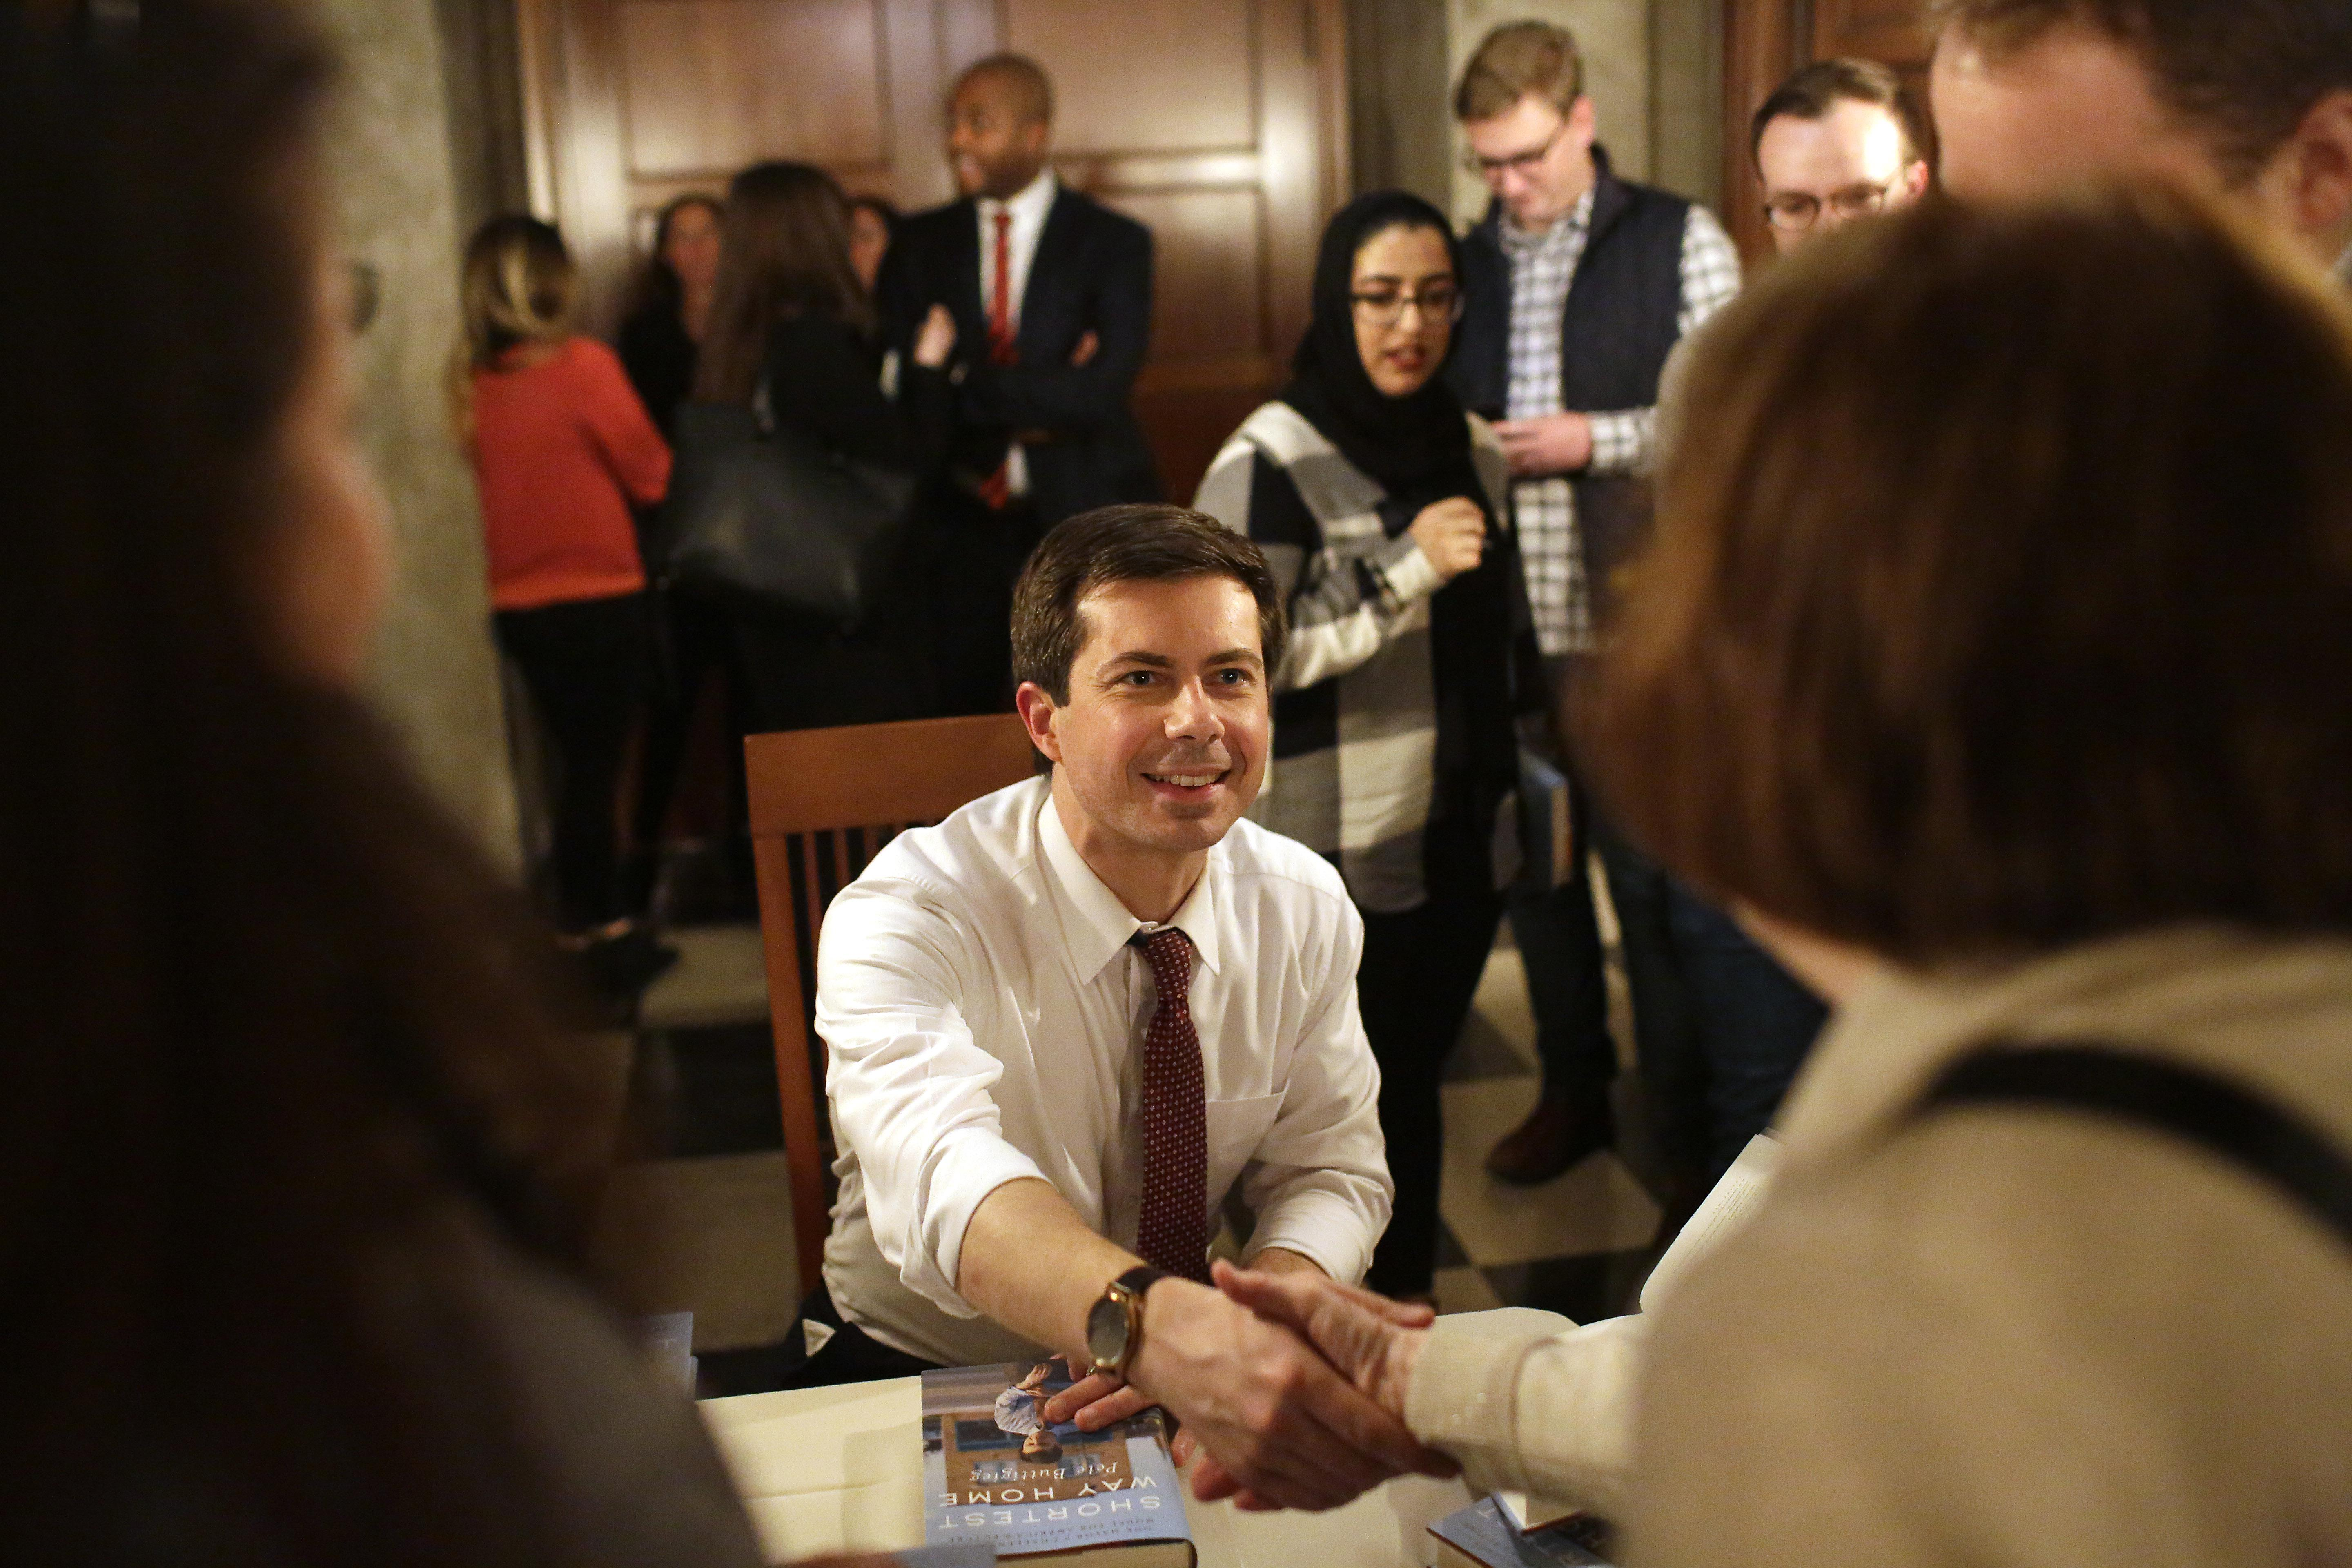 Pete Buttigieg greets a guest as he signs copies of his book in Chicago.